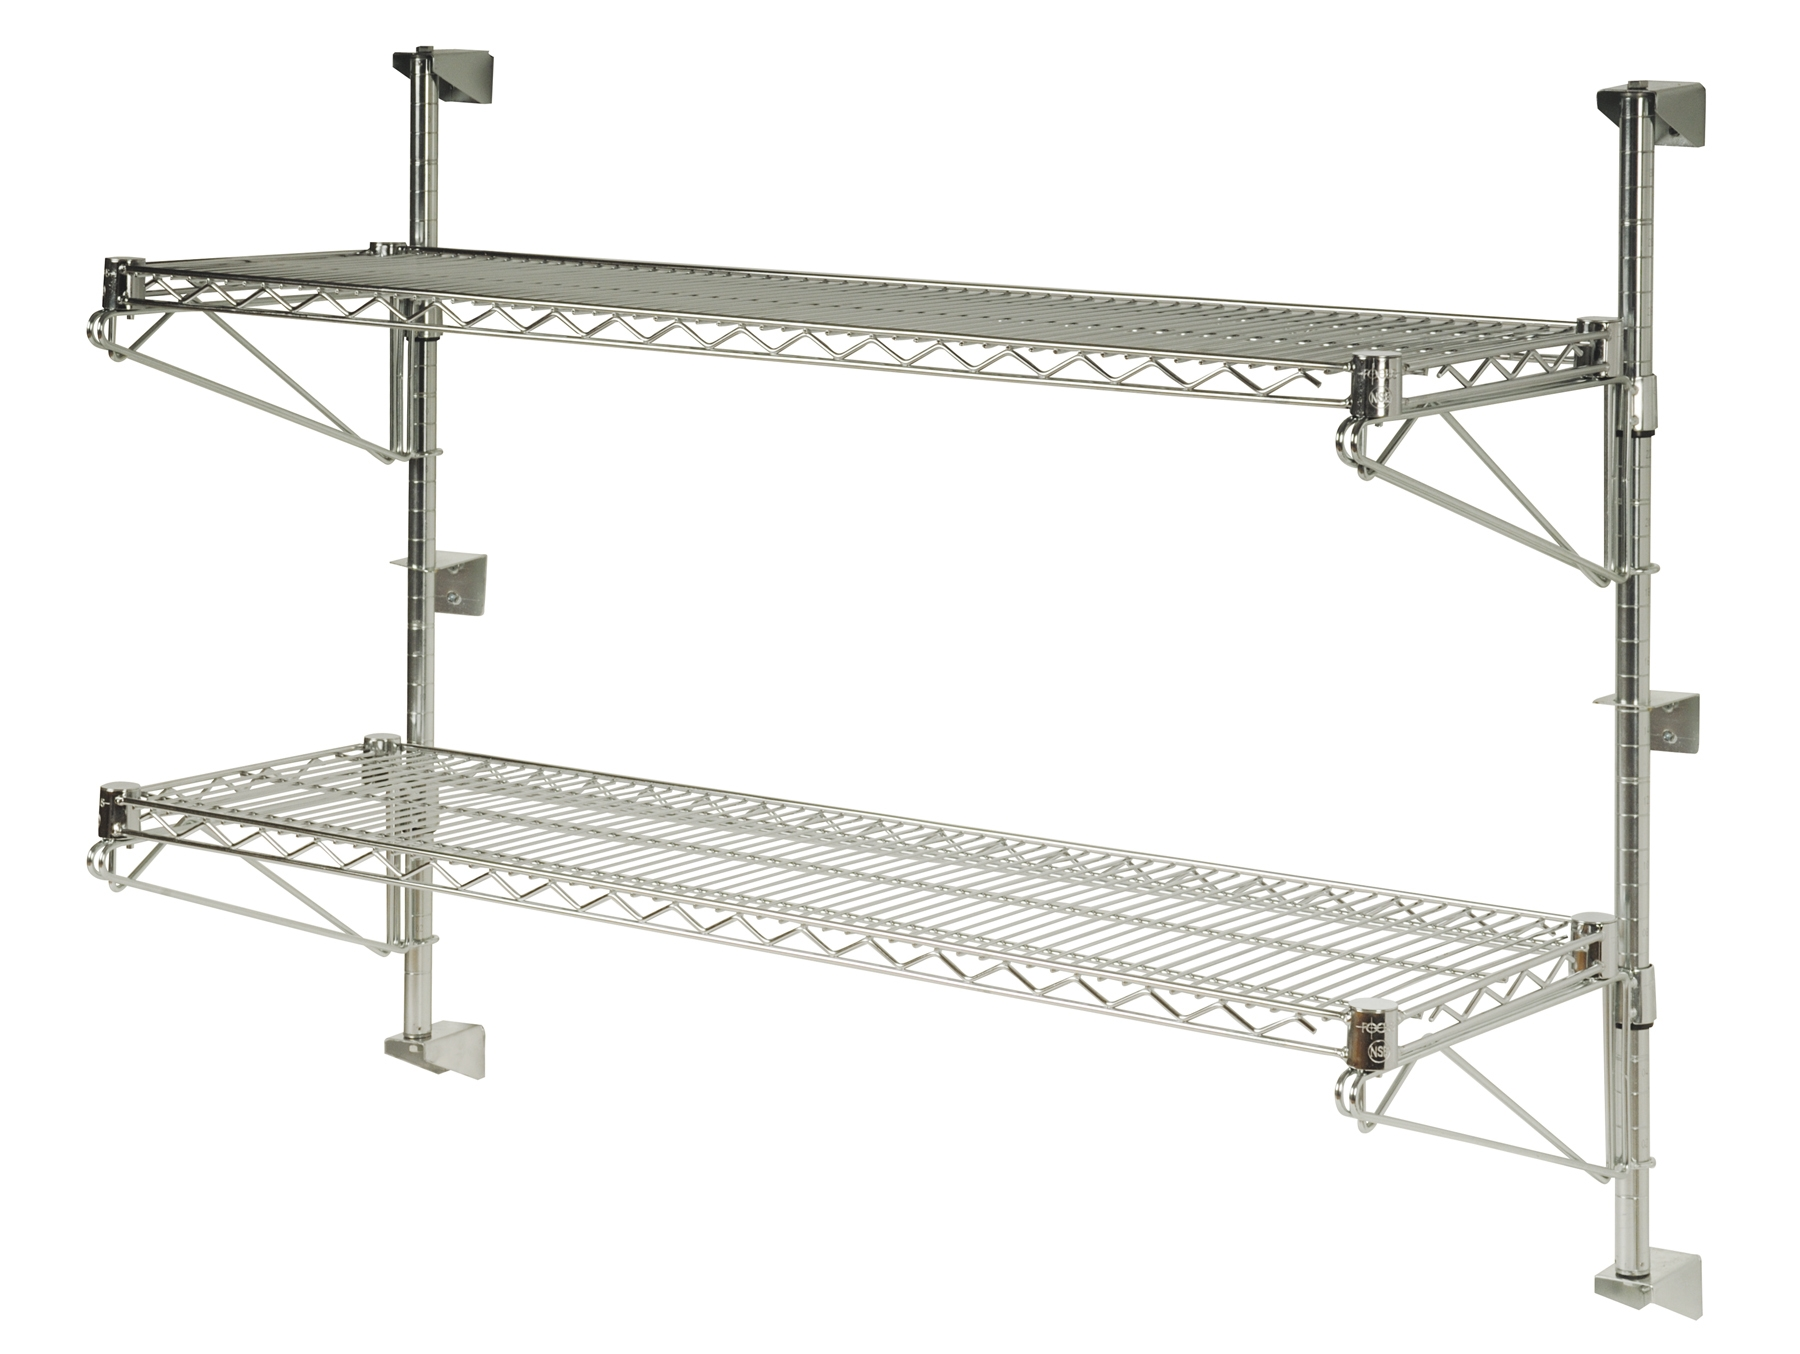 Adjustable Wall Shelf System Wire Shelf Accessories By Omega Products Corporation